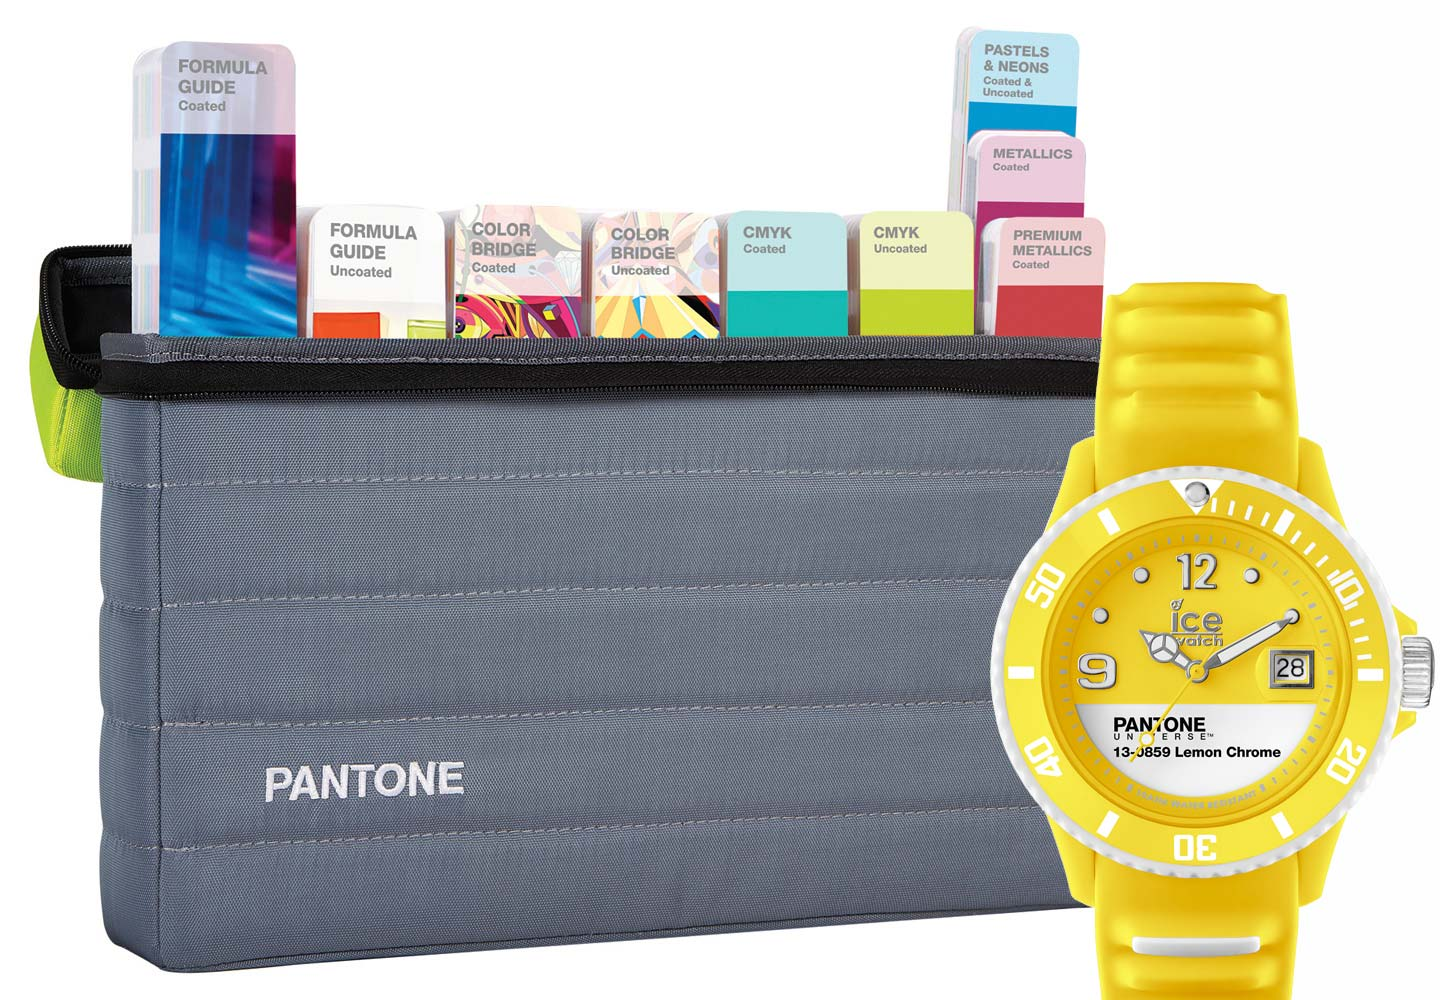 Pantone Plus Portable Studio Guide Set with watch